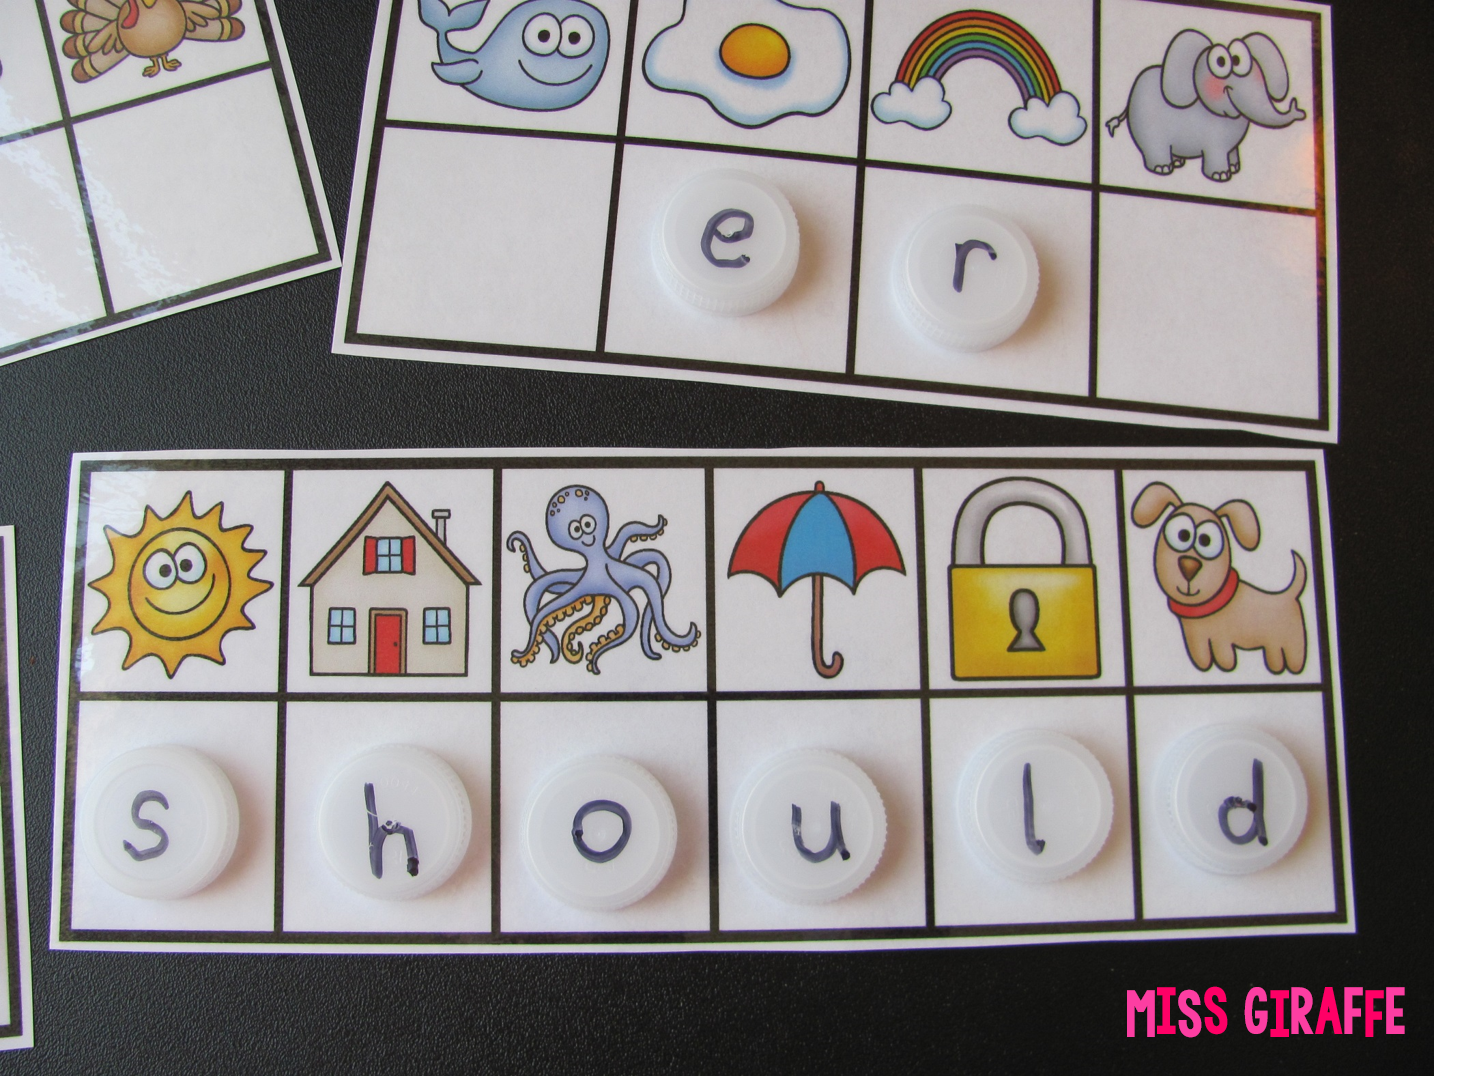 Secret Sight Words activity where kids look at the beginning sound of each picture to reveal the secret sight word.. love these!